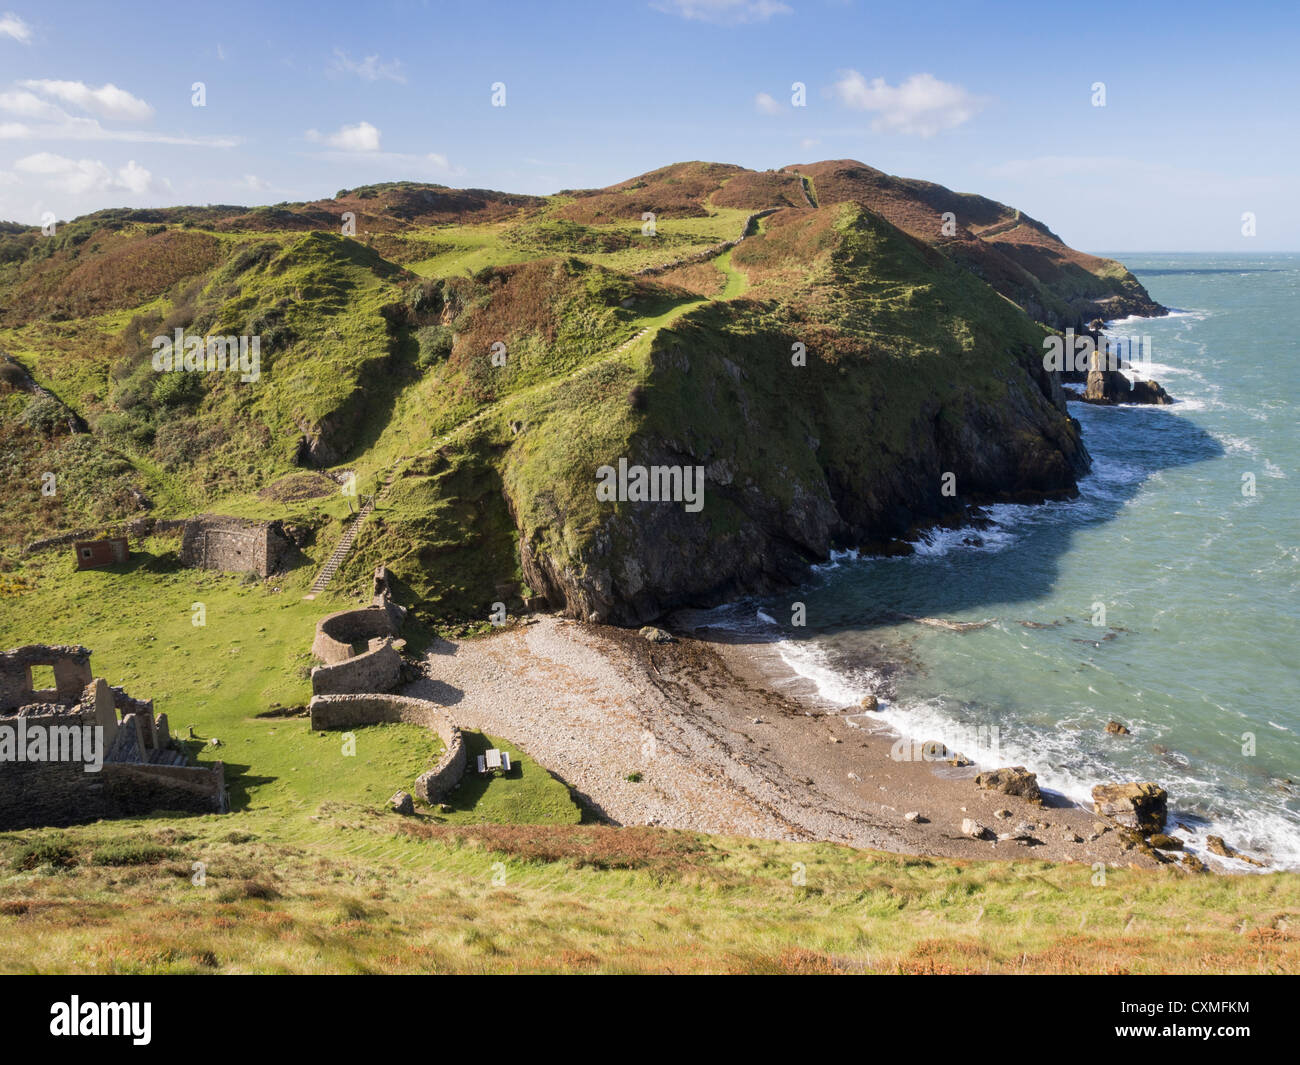 View of Isle of Anglesey Coastal Path and rugged coastline at Porth Llanlleiana Bay Cemaes Anglesey North Wales - Stock Image